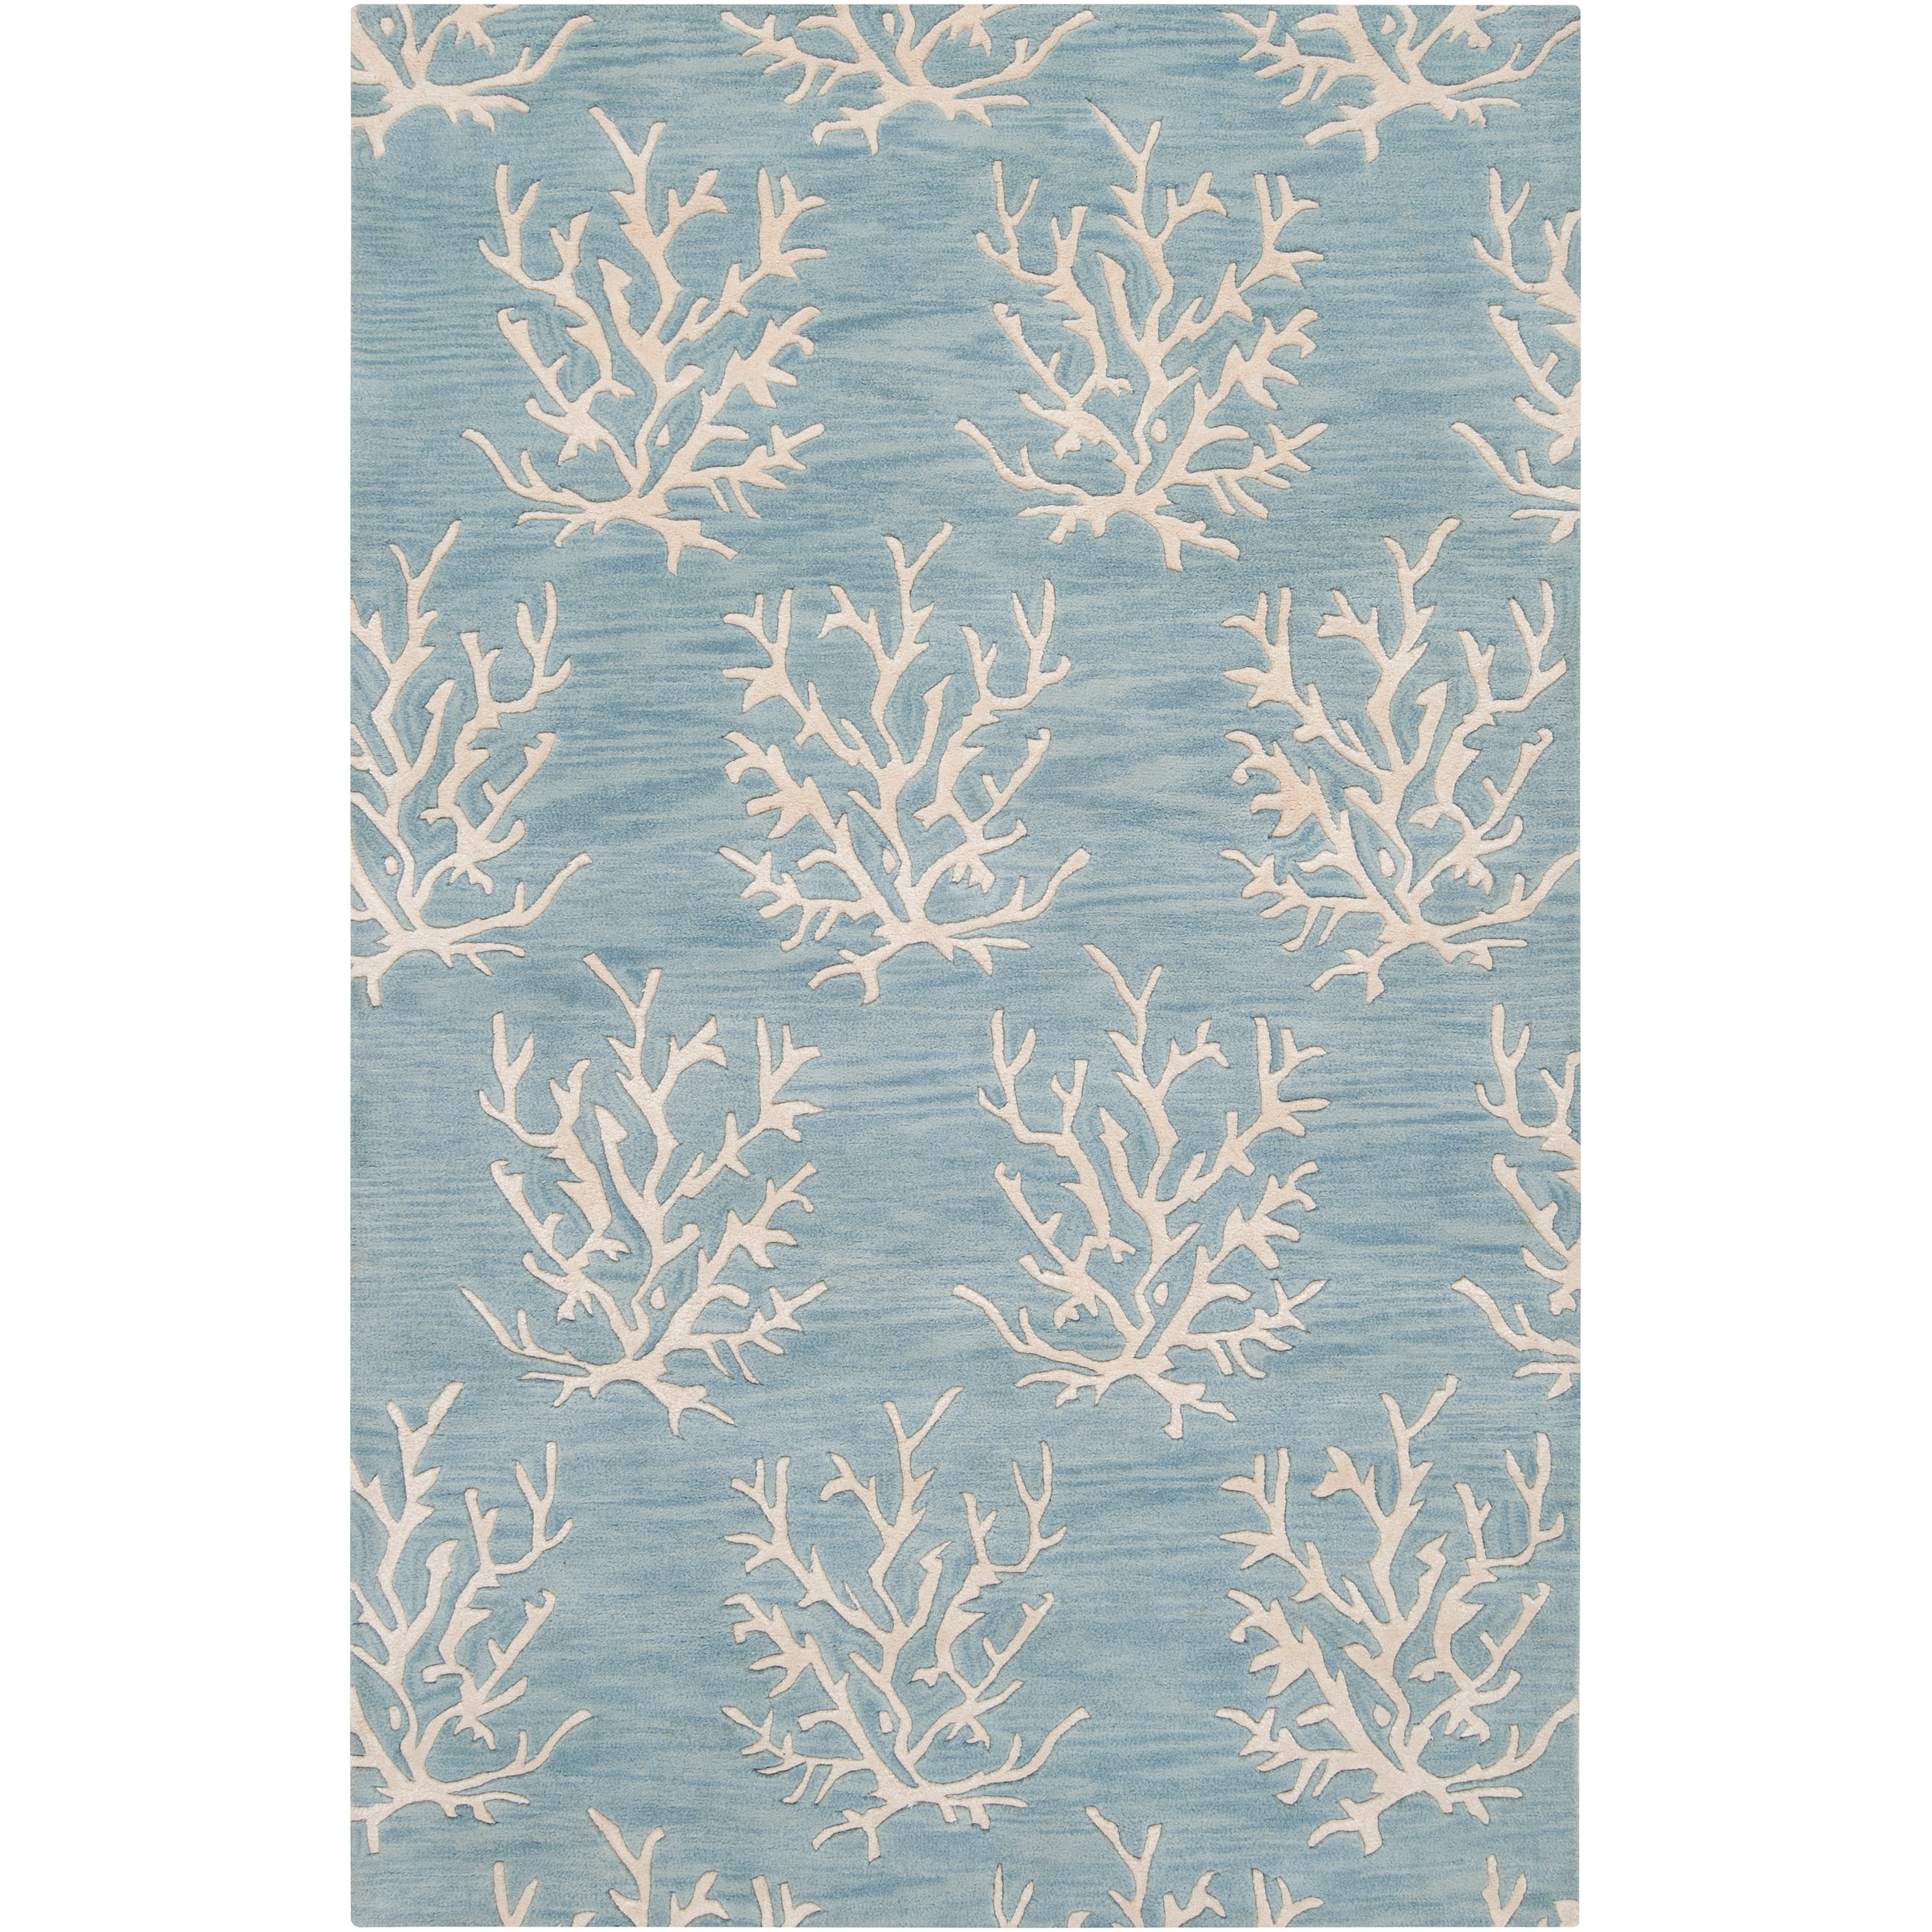 Somerset Bay Hand Tufted Bacelot Bay Blue Beach Inspired